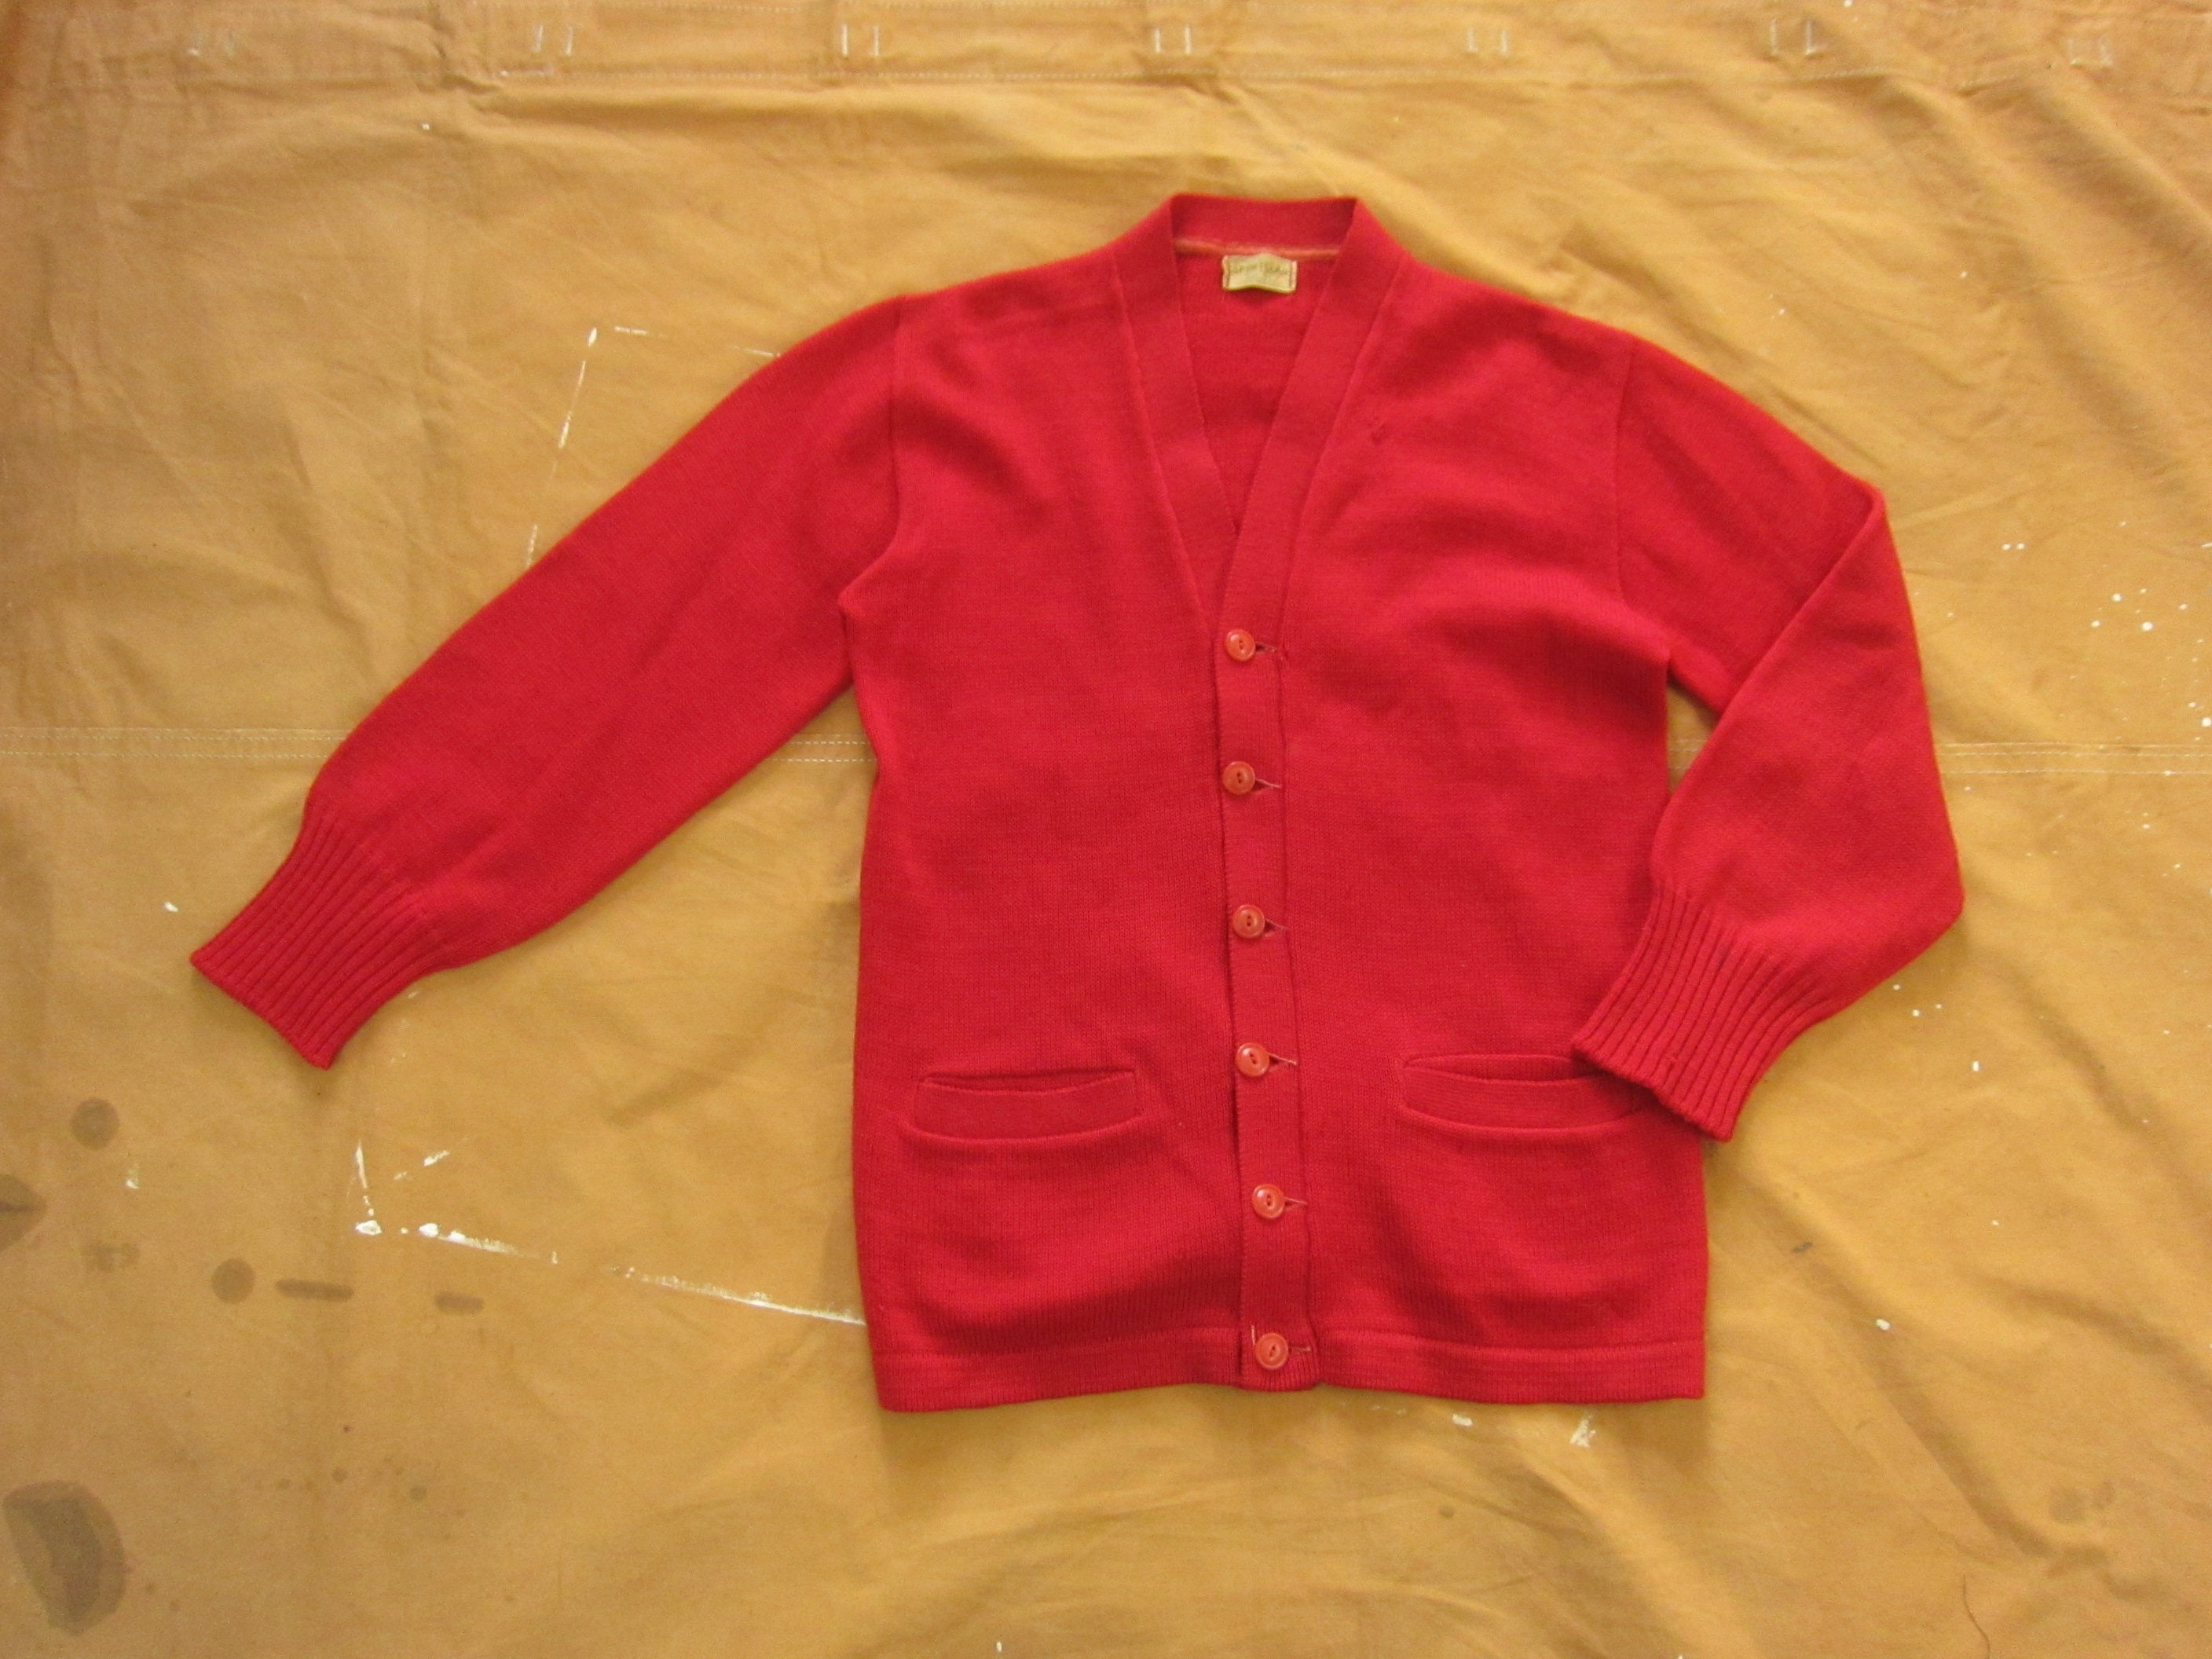 New 1930s Mens Fashion Ties Small 30S Jc Penney Wool Cardigan SweaterSportclad, Button Down, V Neck, 1930S 1940S Penneys $0.00 AT vintagedancer.com